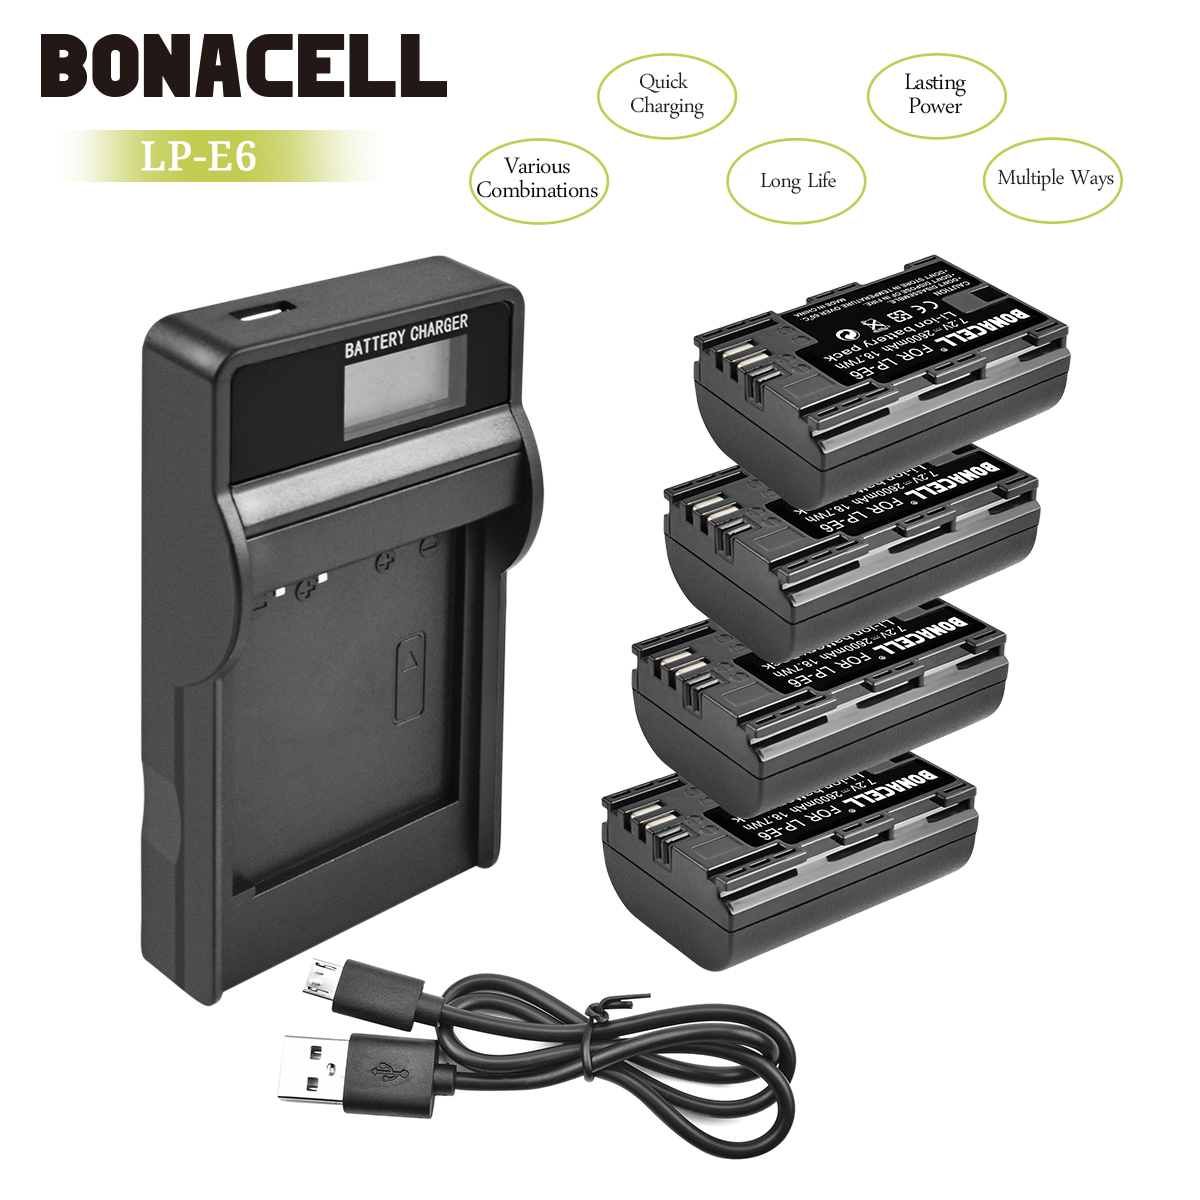 Bonacell 2600mAh LP-E6 Digital Camera Battery+LCD Charger For Canon EOS 5D Mark II 2 III 3 6D 7D 60D 60Da 70D 80D DSLR EOS L10Bonacell 2600mAh LP-E6 Digital Camera Battery+LCD Charger For Canon EOS 5D Mark II 2 III 3 6D 7D 60D 60Da 70D 80D DSLR EOS L10